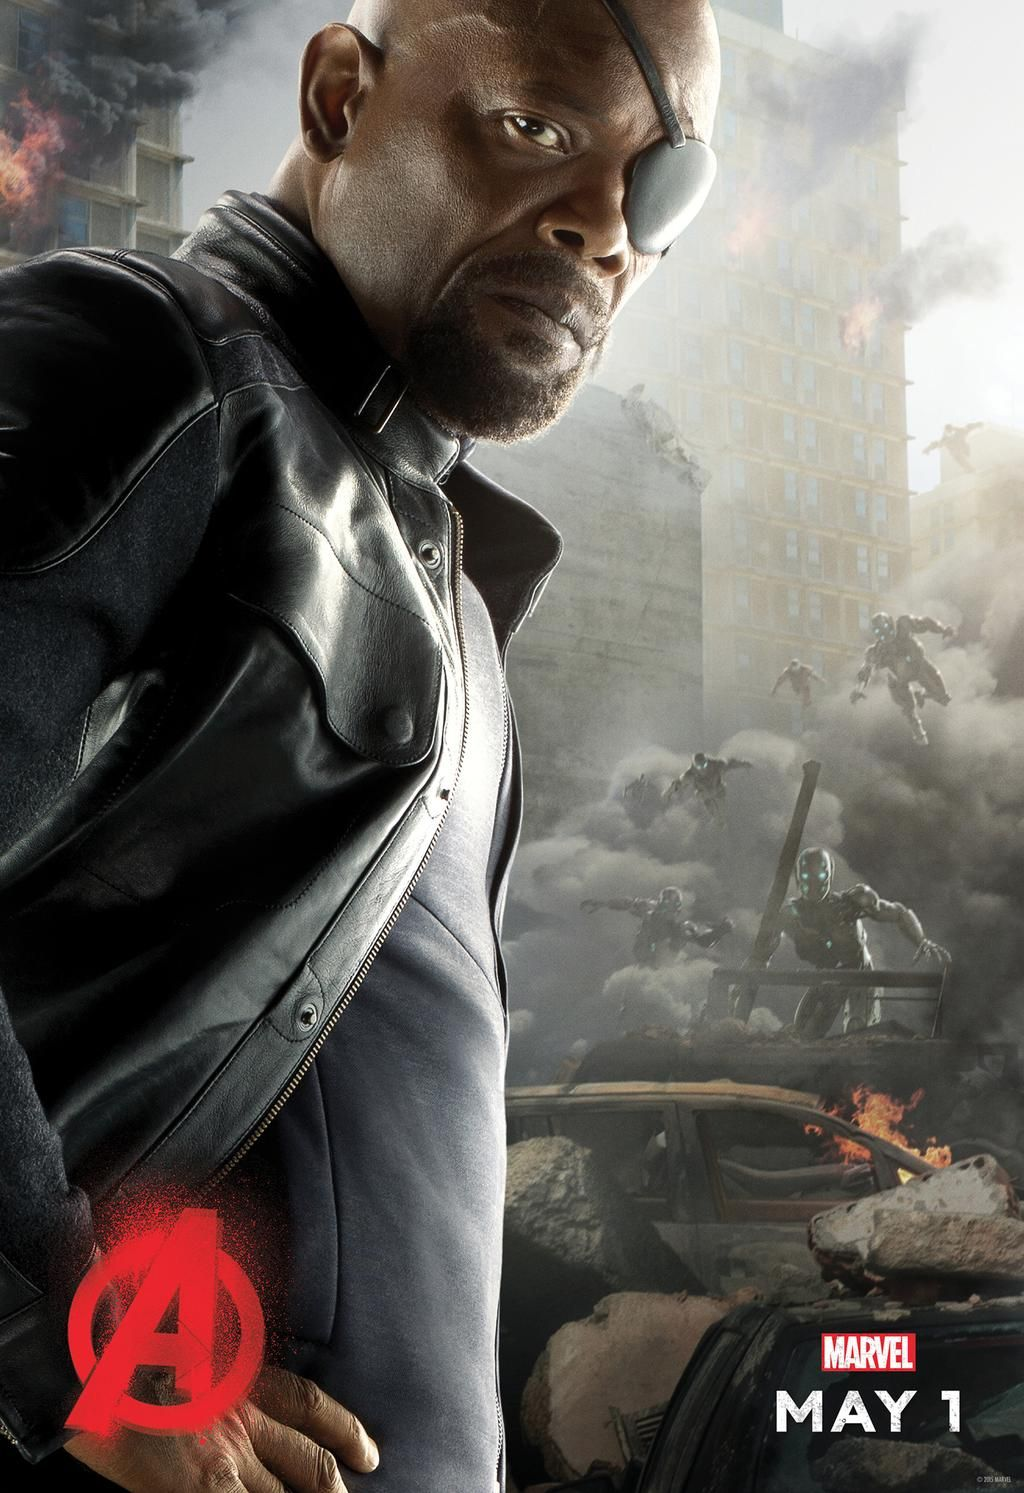 New Avengers: Age of Ultron Posters Reveal Black Widow ...